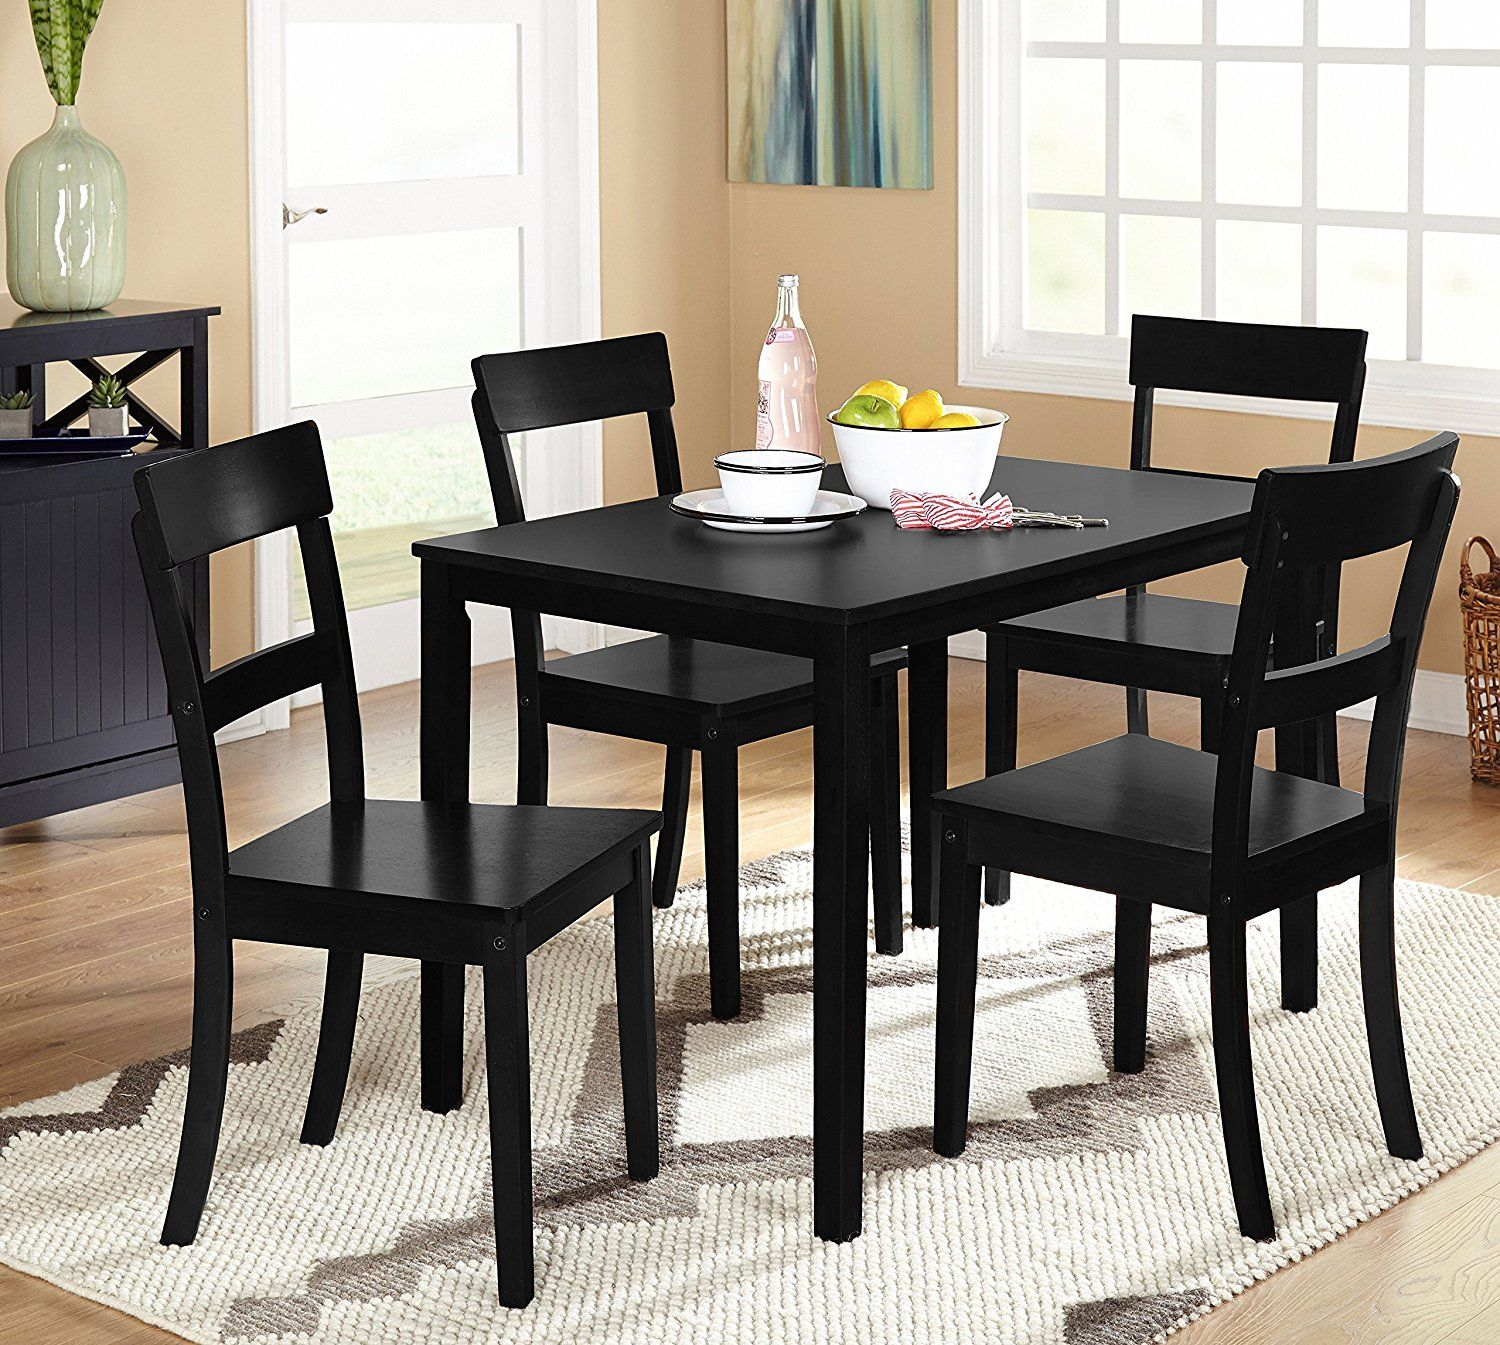 Cheap 5 Piece Dining Set: Target Marketing Systems Ian Collection 5